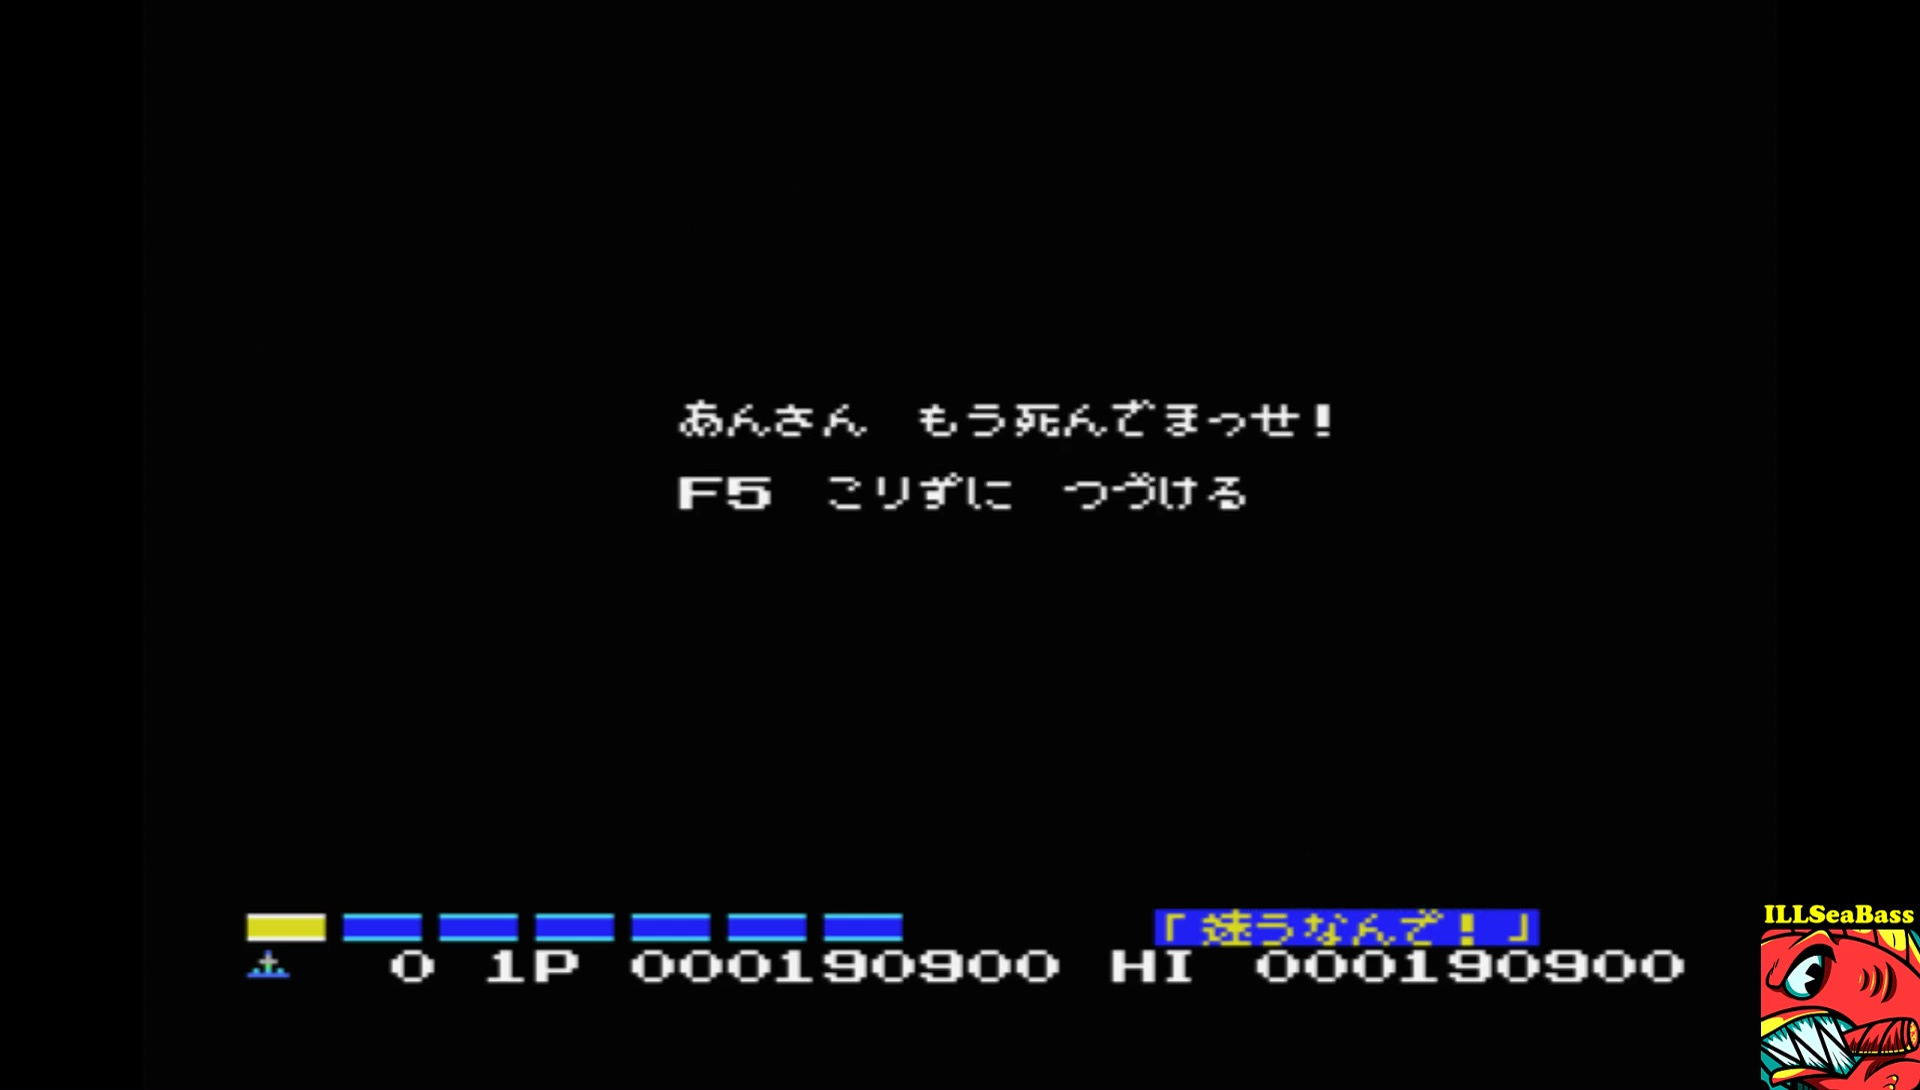 ILLSeaBass: Parodius (MSX Emulated) 190,900 points on 2017-07-29 09:42:56